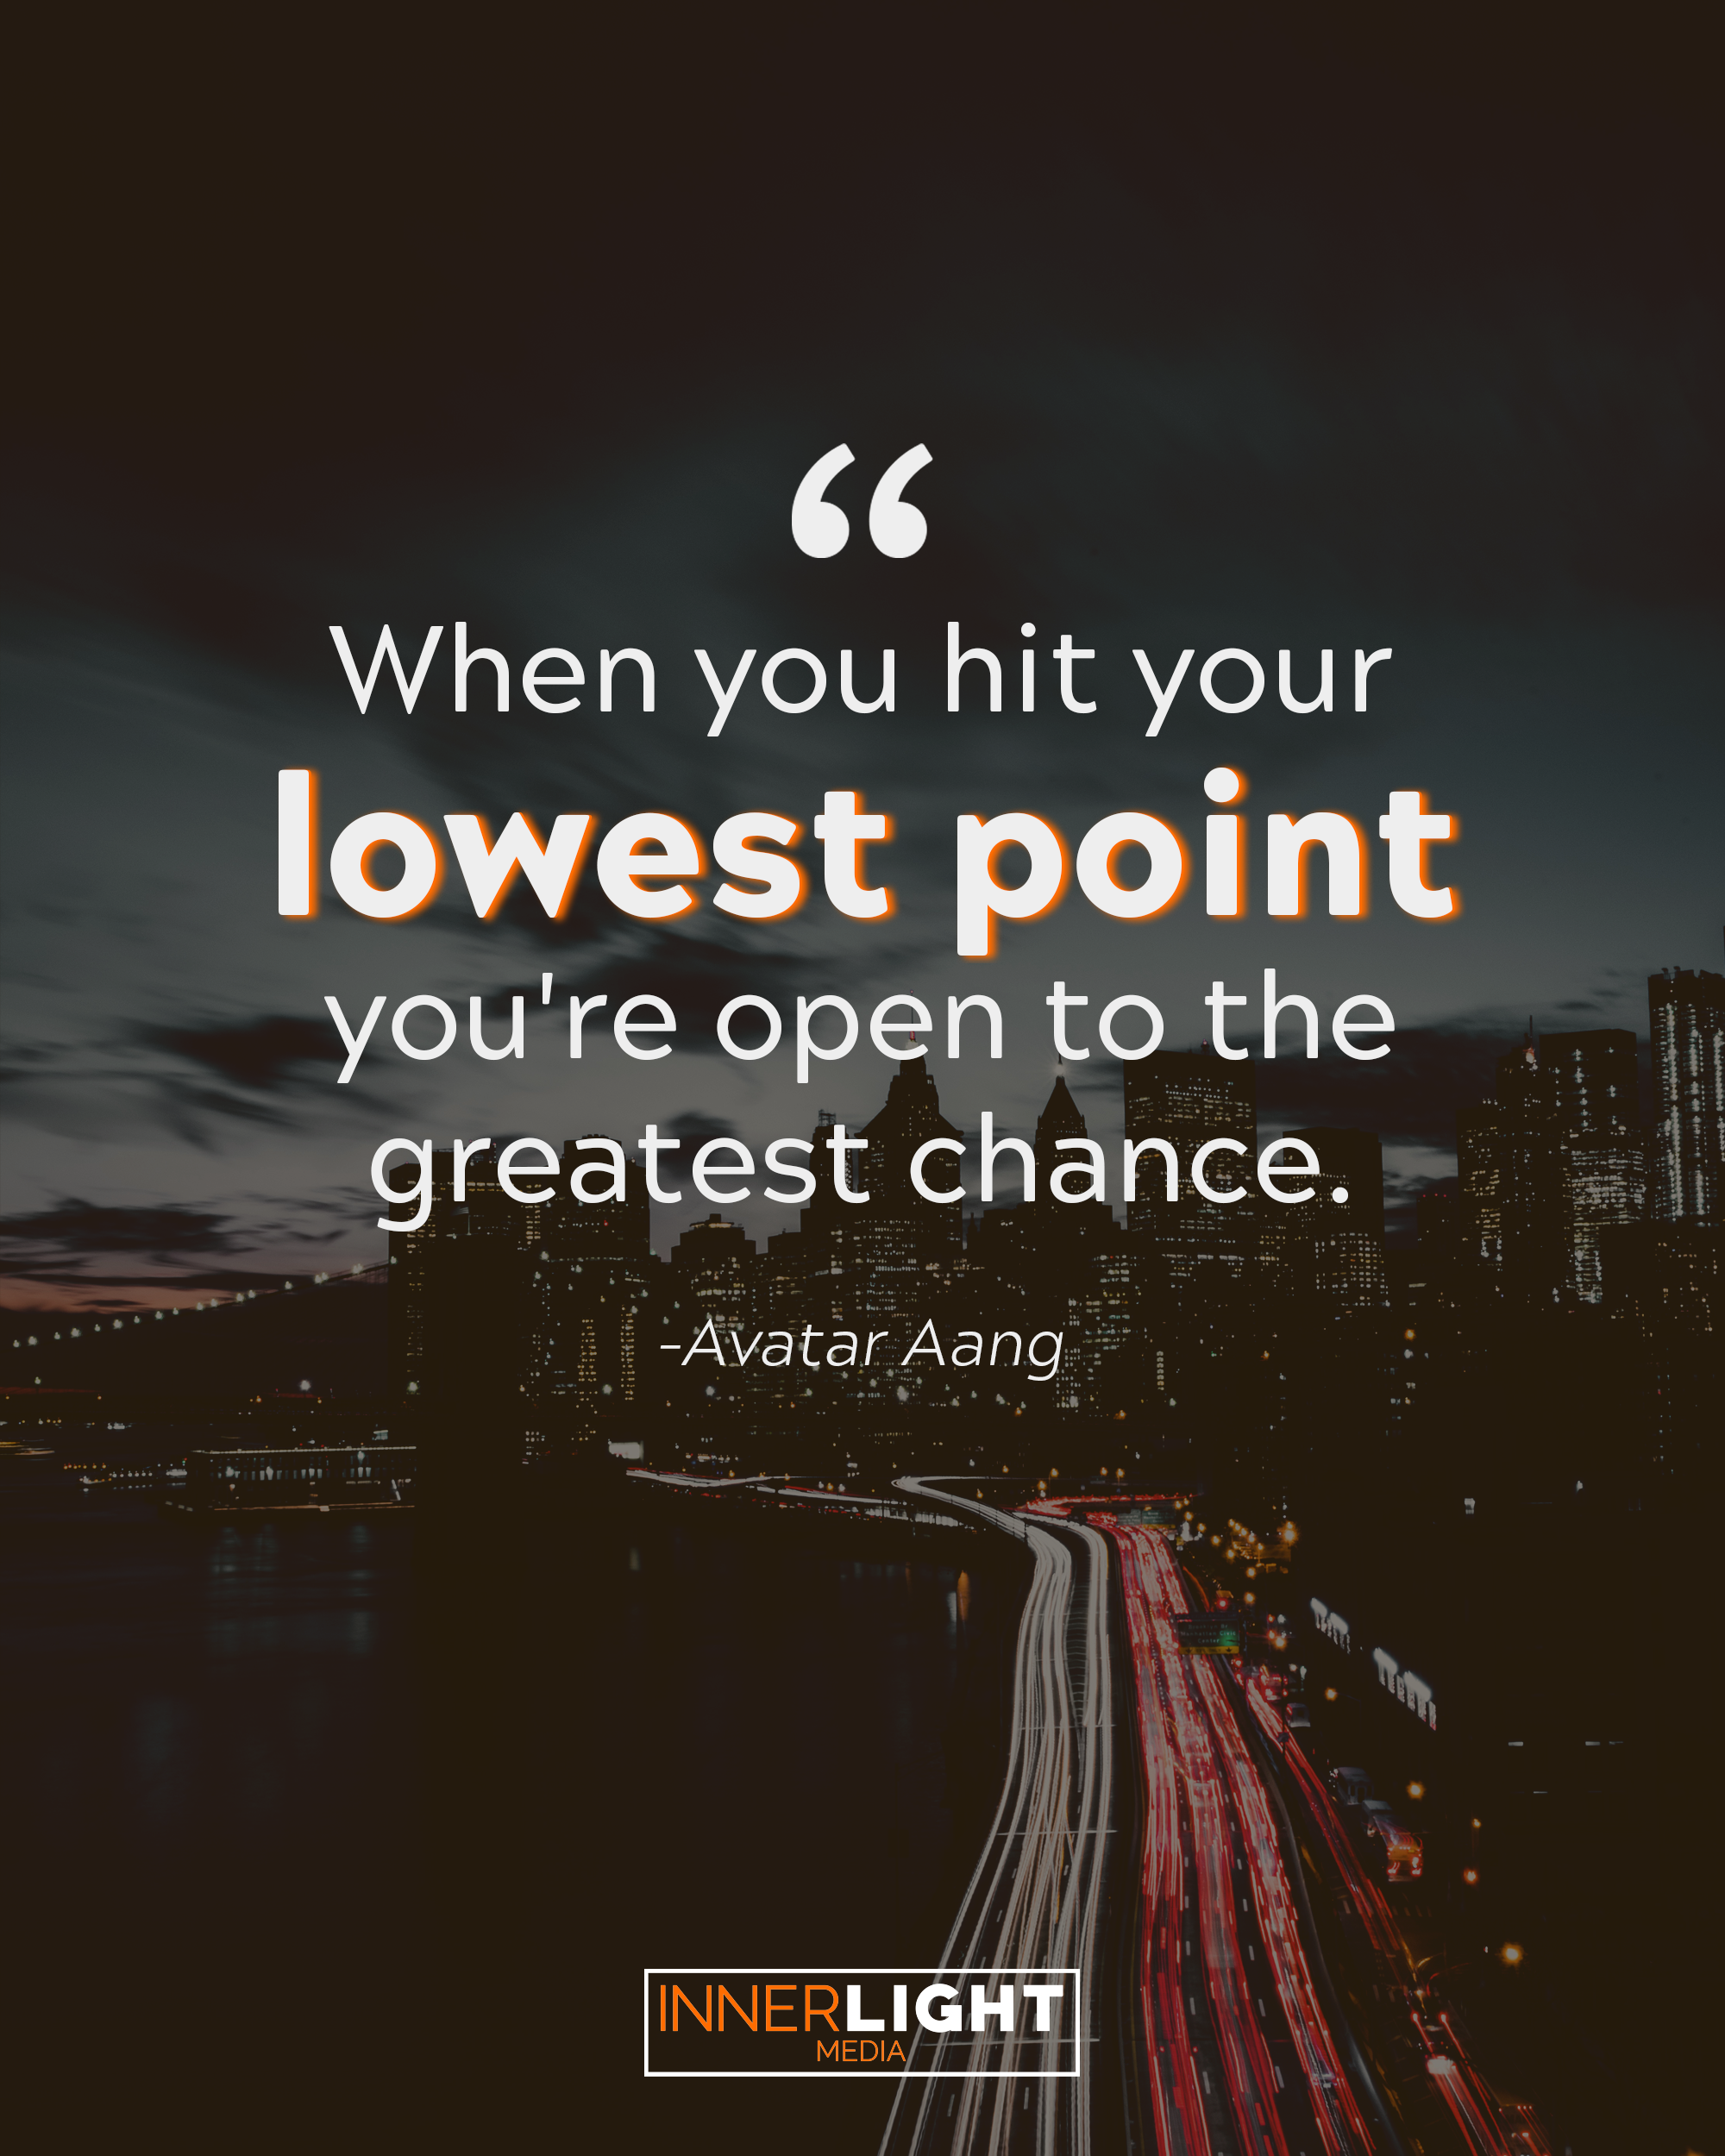 No Matter How Low You Go You Can Spring Yourself To The Top Inspirational Quotes Motivational Quotes Inspirational Story